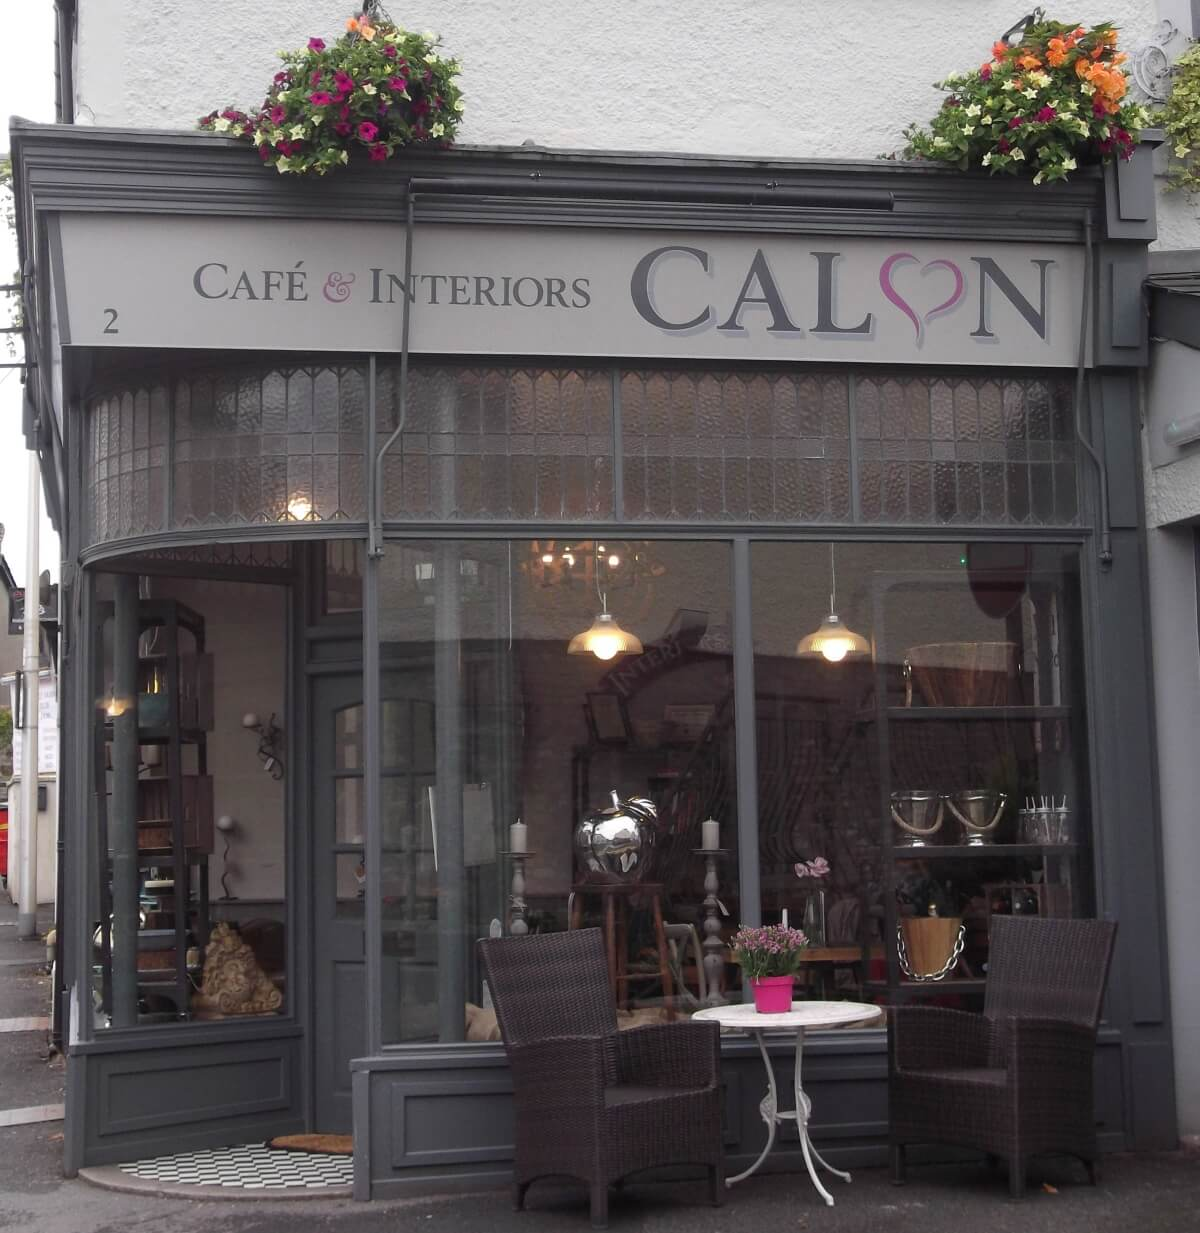 Carmarthen Signs for Calon Cafe - Image 1